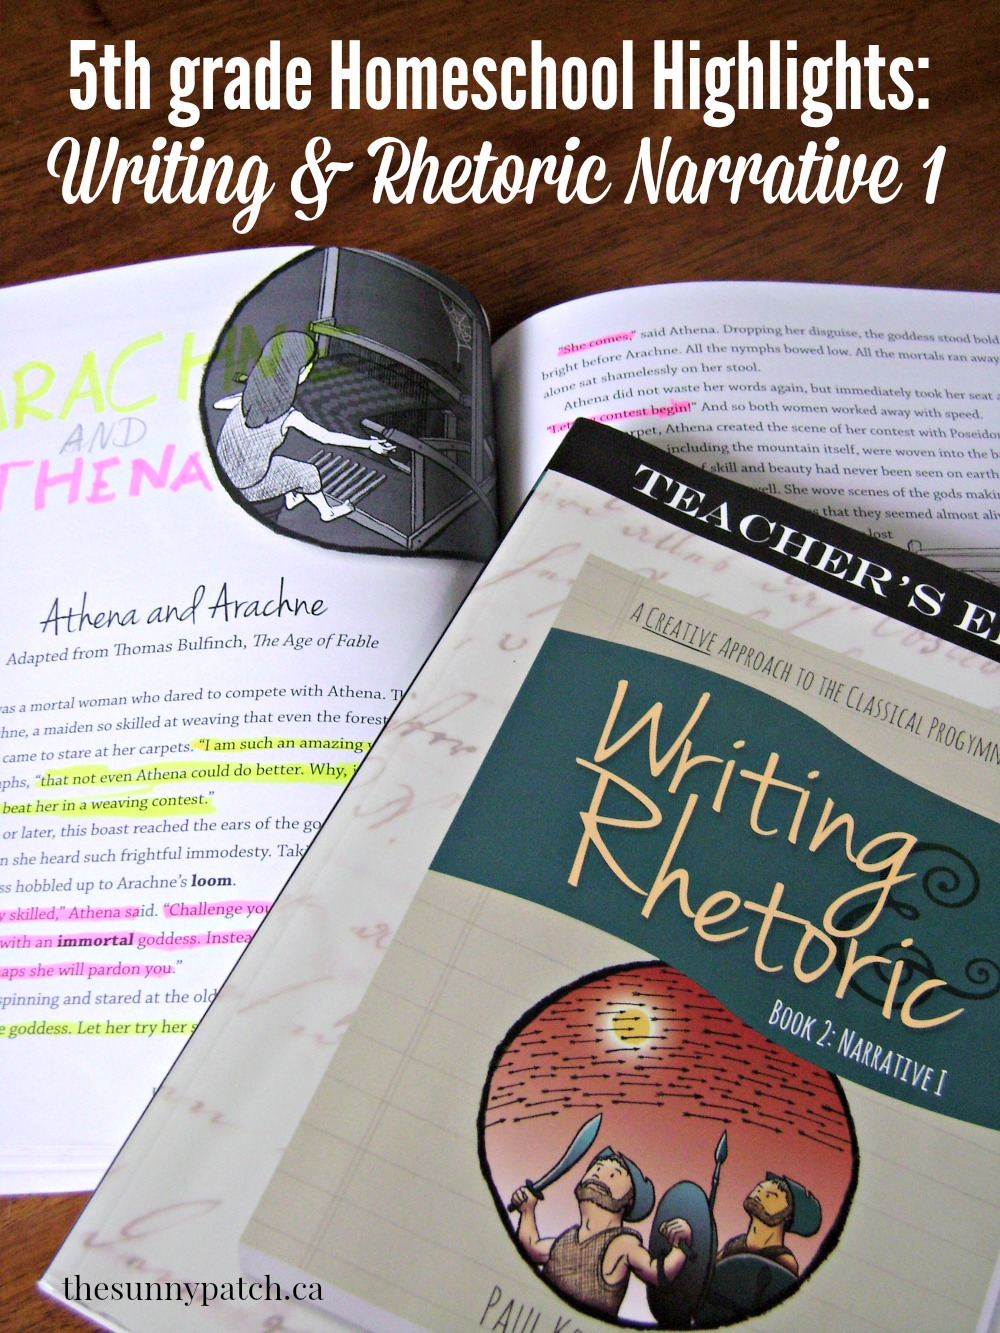 A look at Writing & Rhetoric Narrative I from Classical Academic Press. Take a peek at a week with this fab writing program.